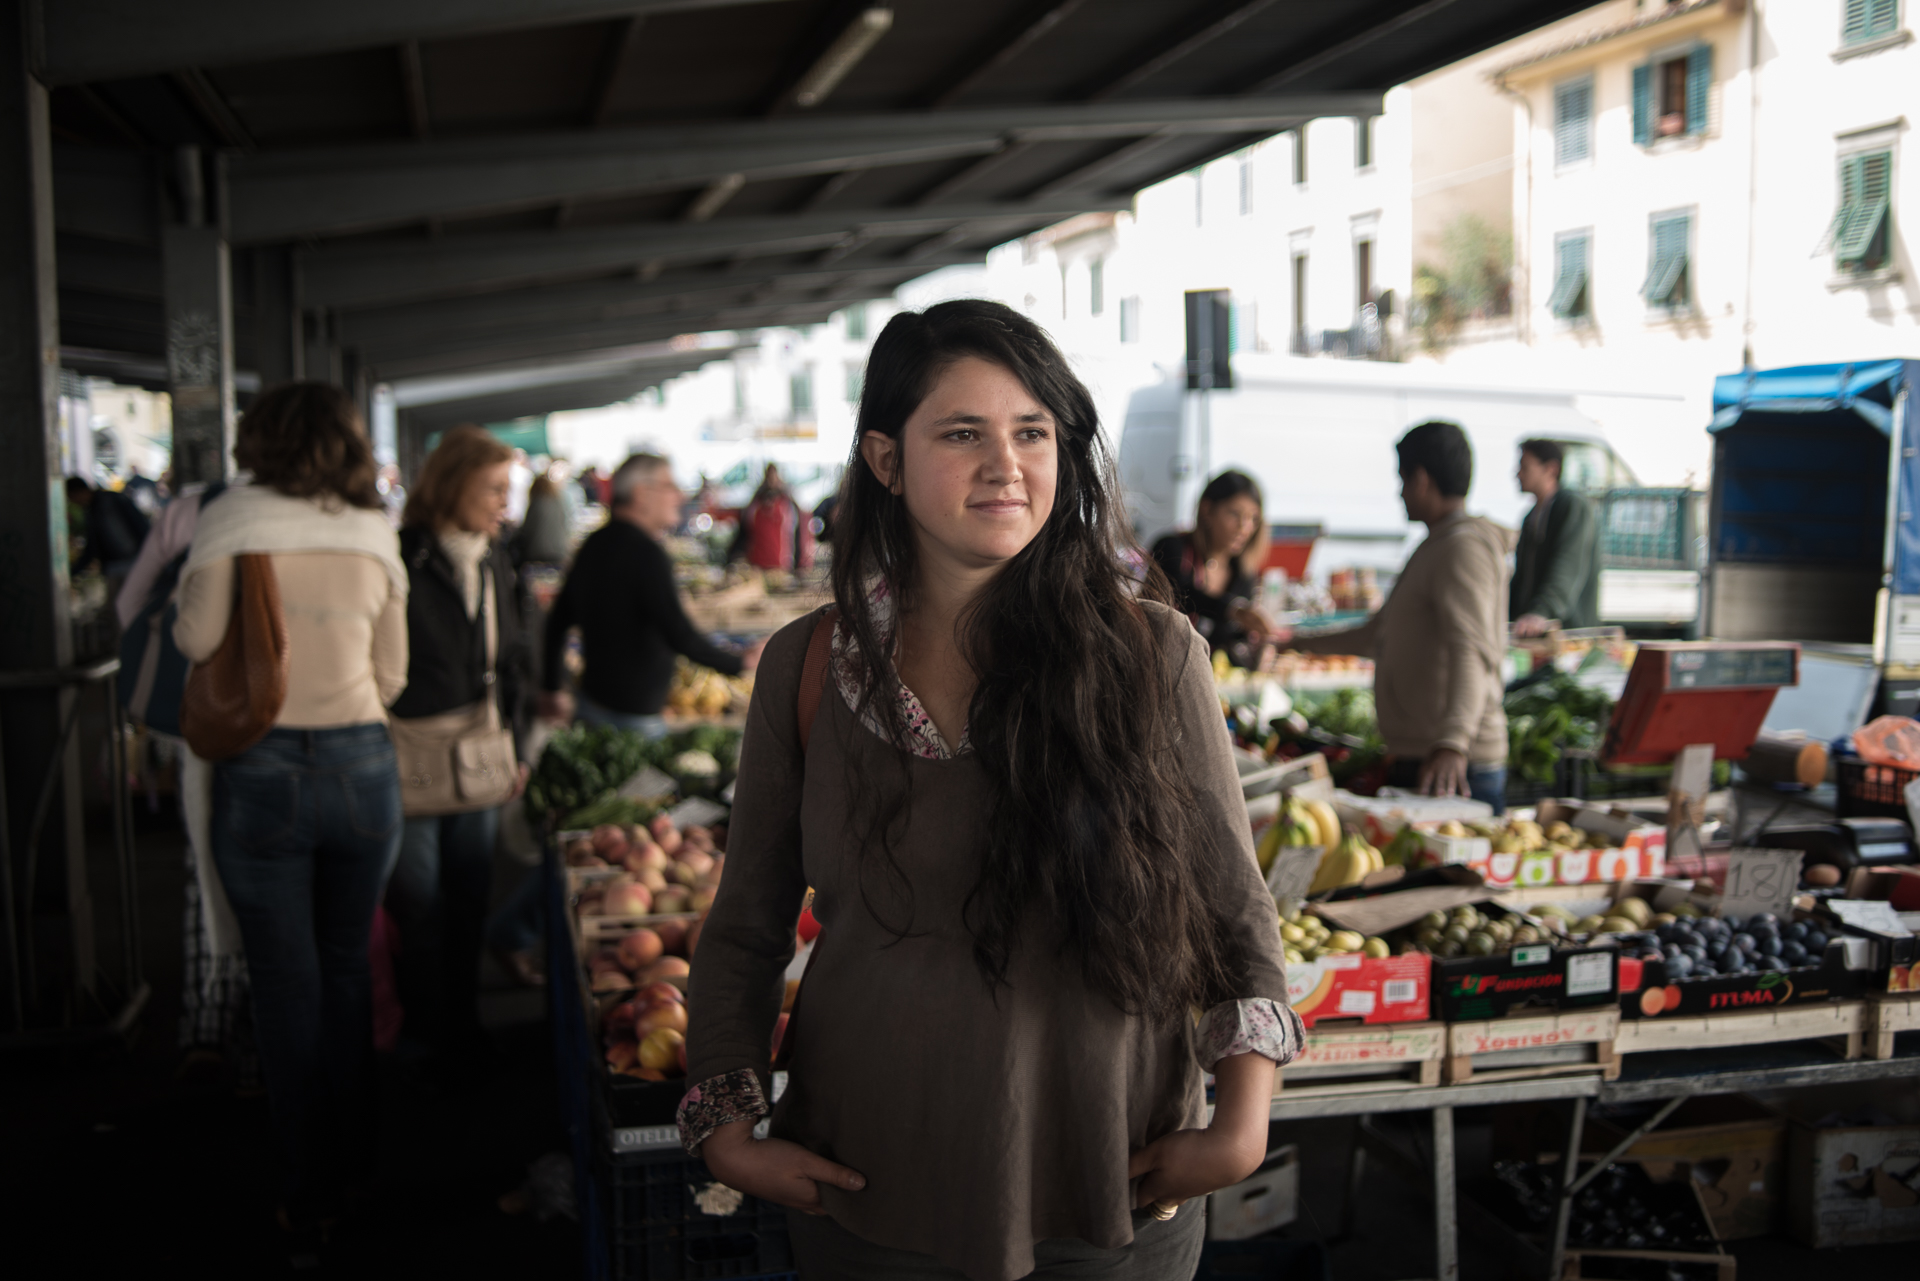 Giullia from Senza Spreco - an Italian organisation based in Florence that fights to reduce the amount of edible food going to waste